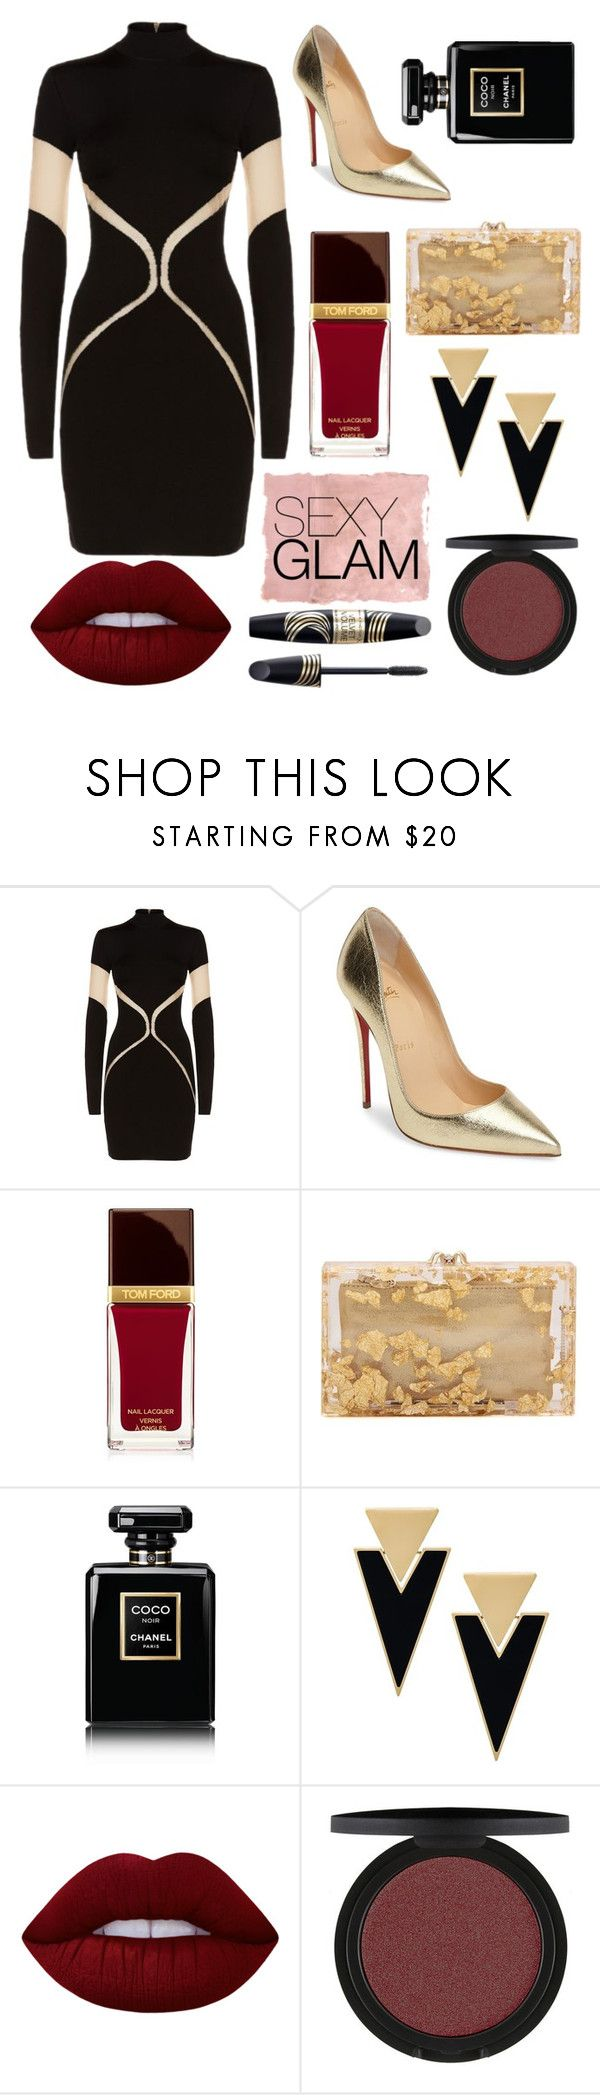 """""""Glamour Look for Tonight Party"""" by nataqisth ❤ liked on Polyvore featuring beauty, Rothko, Balmain, Christian Louboutin, Tom Ford, Max Factor, Charlotte Olympia, Chanel, Yves Saint Laurent and Lime Crime"""